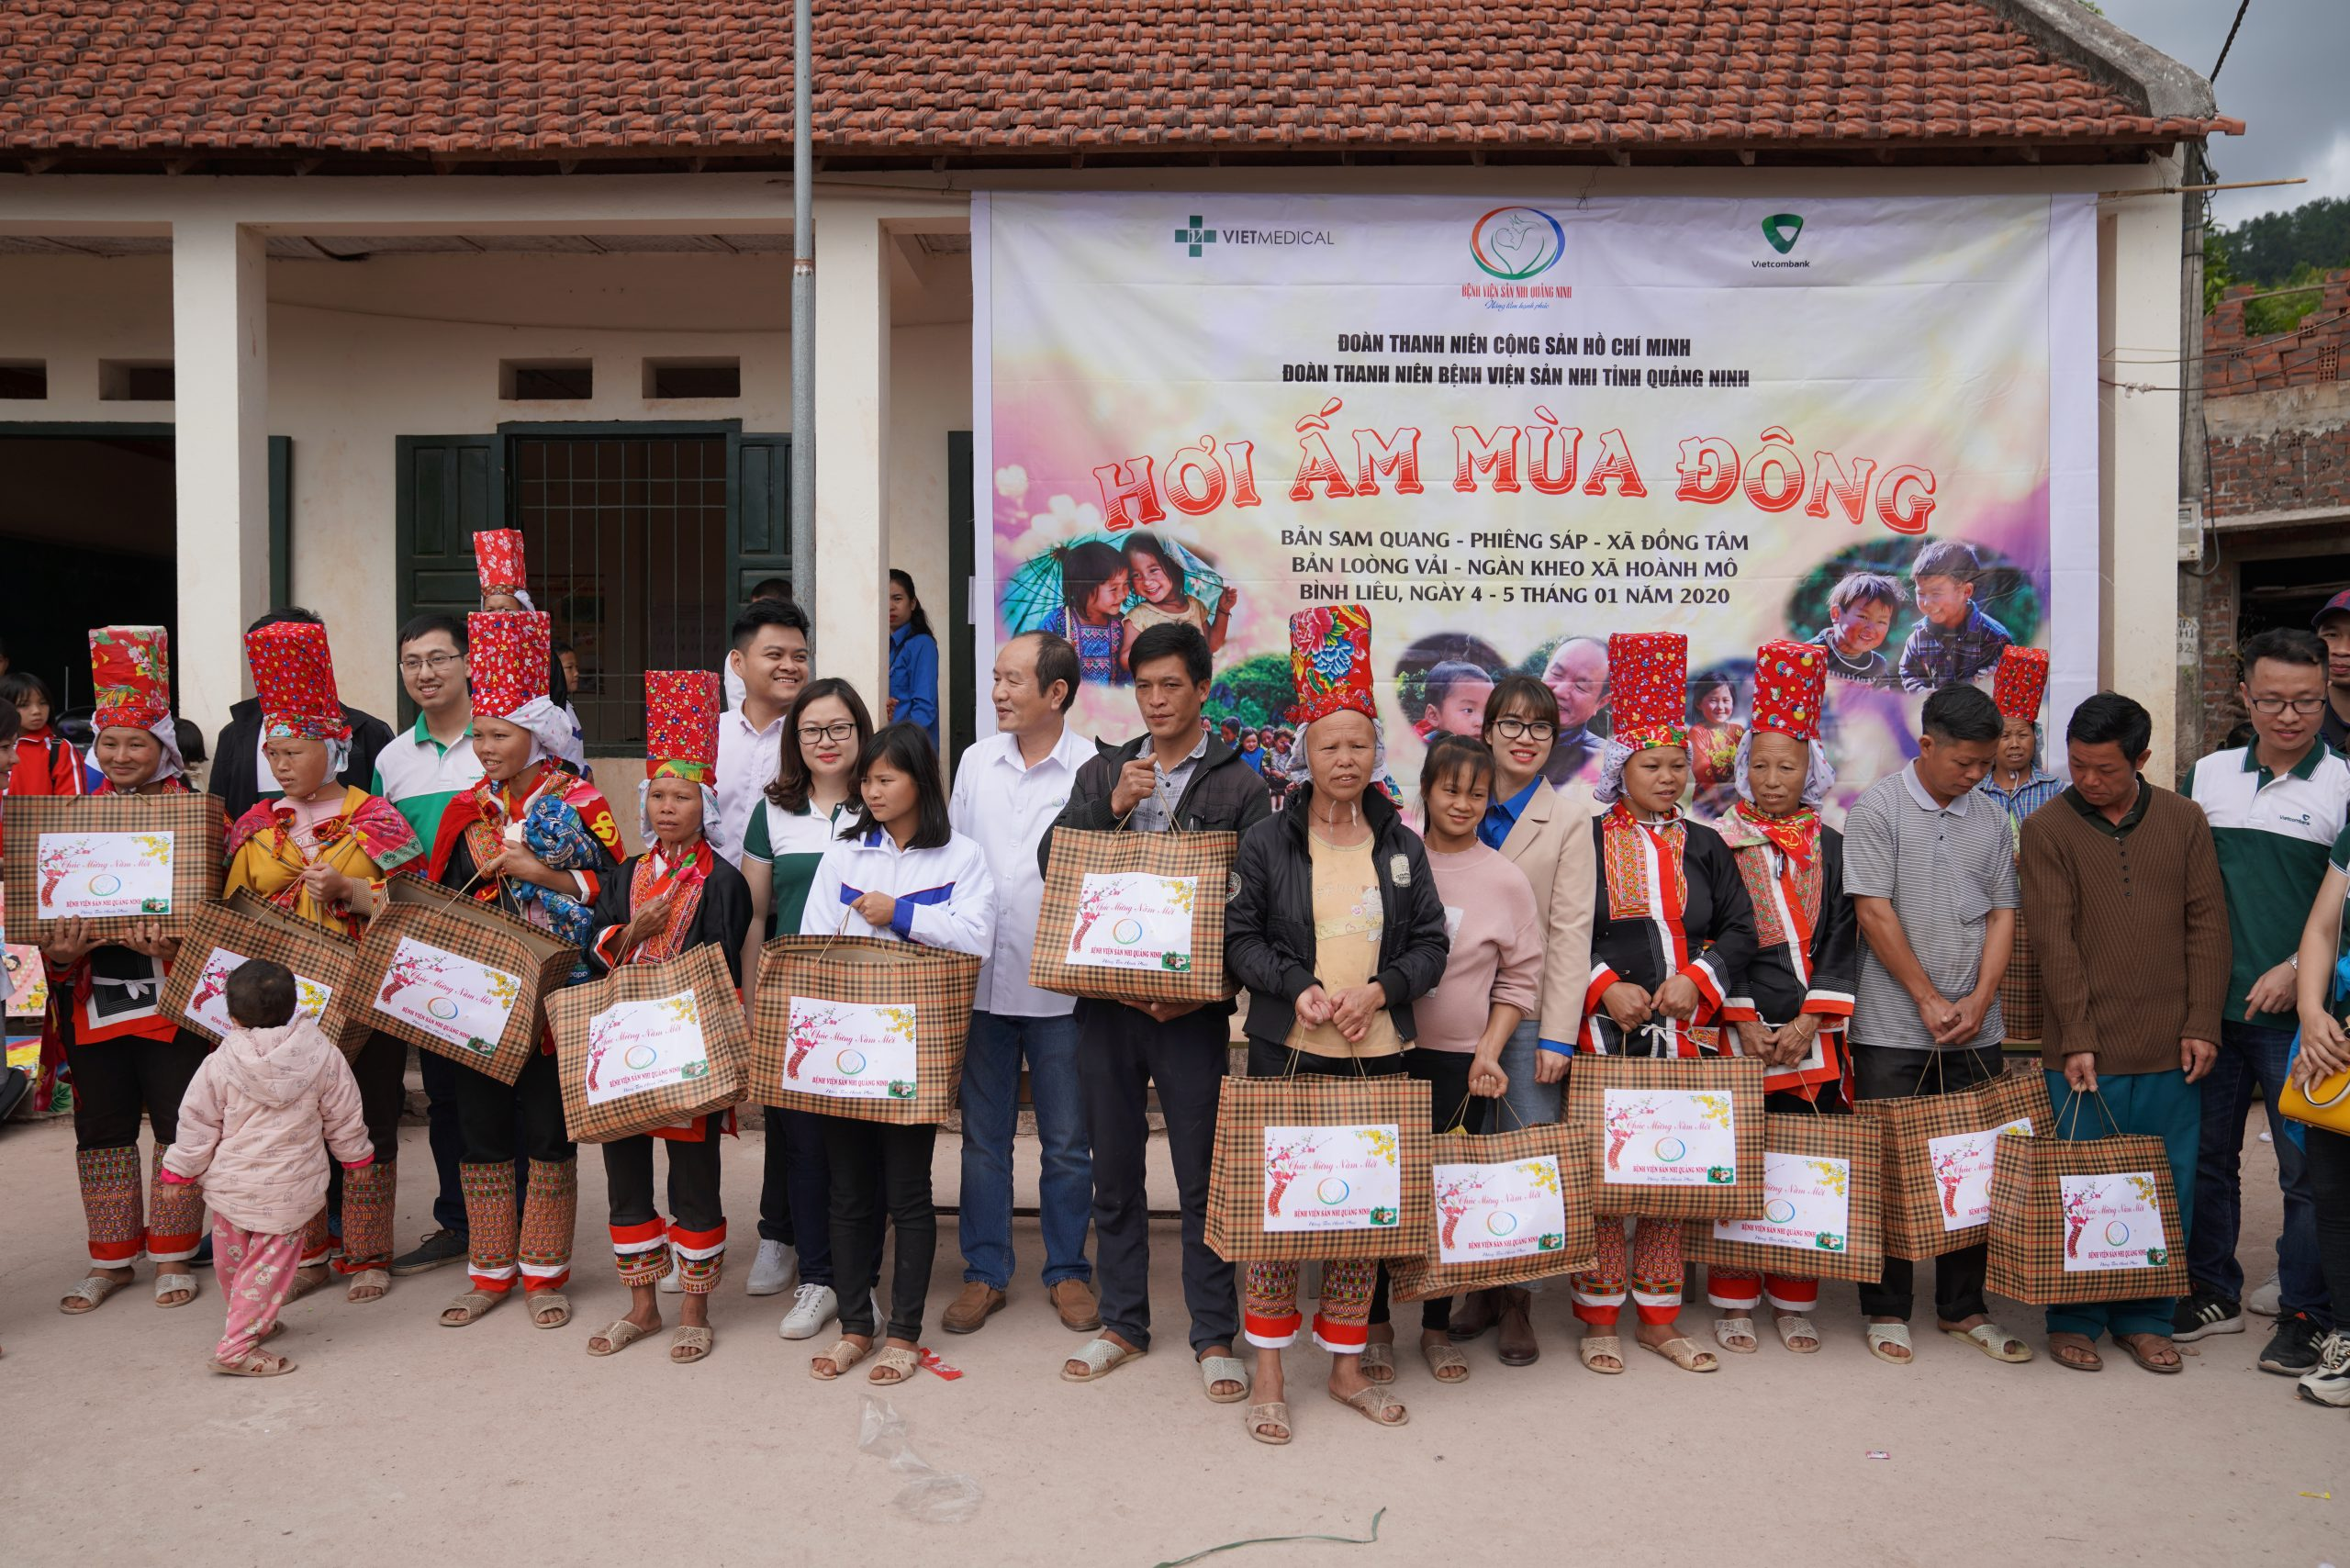 """Vietmedical (VMED Group) accompanies the volunteer program """"Winter warmth"""", bringing love to the highlanders in Binh Lieu district, Quang Ninh province."""